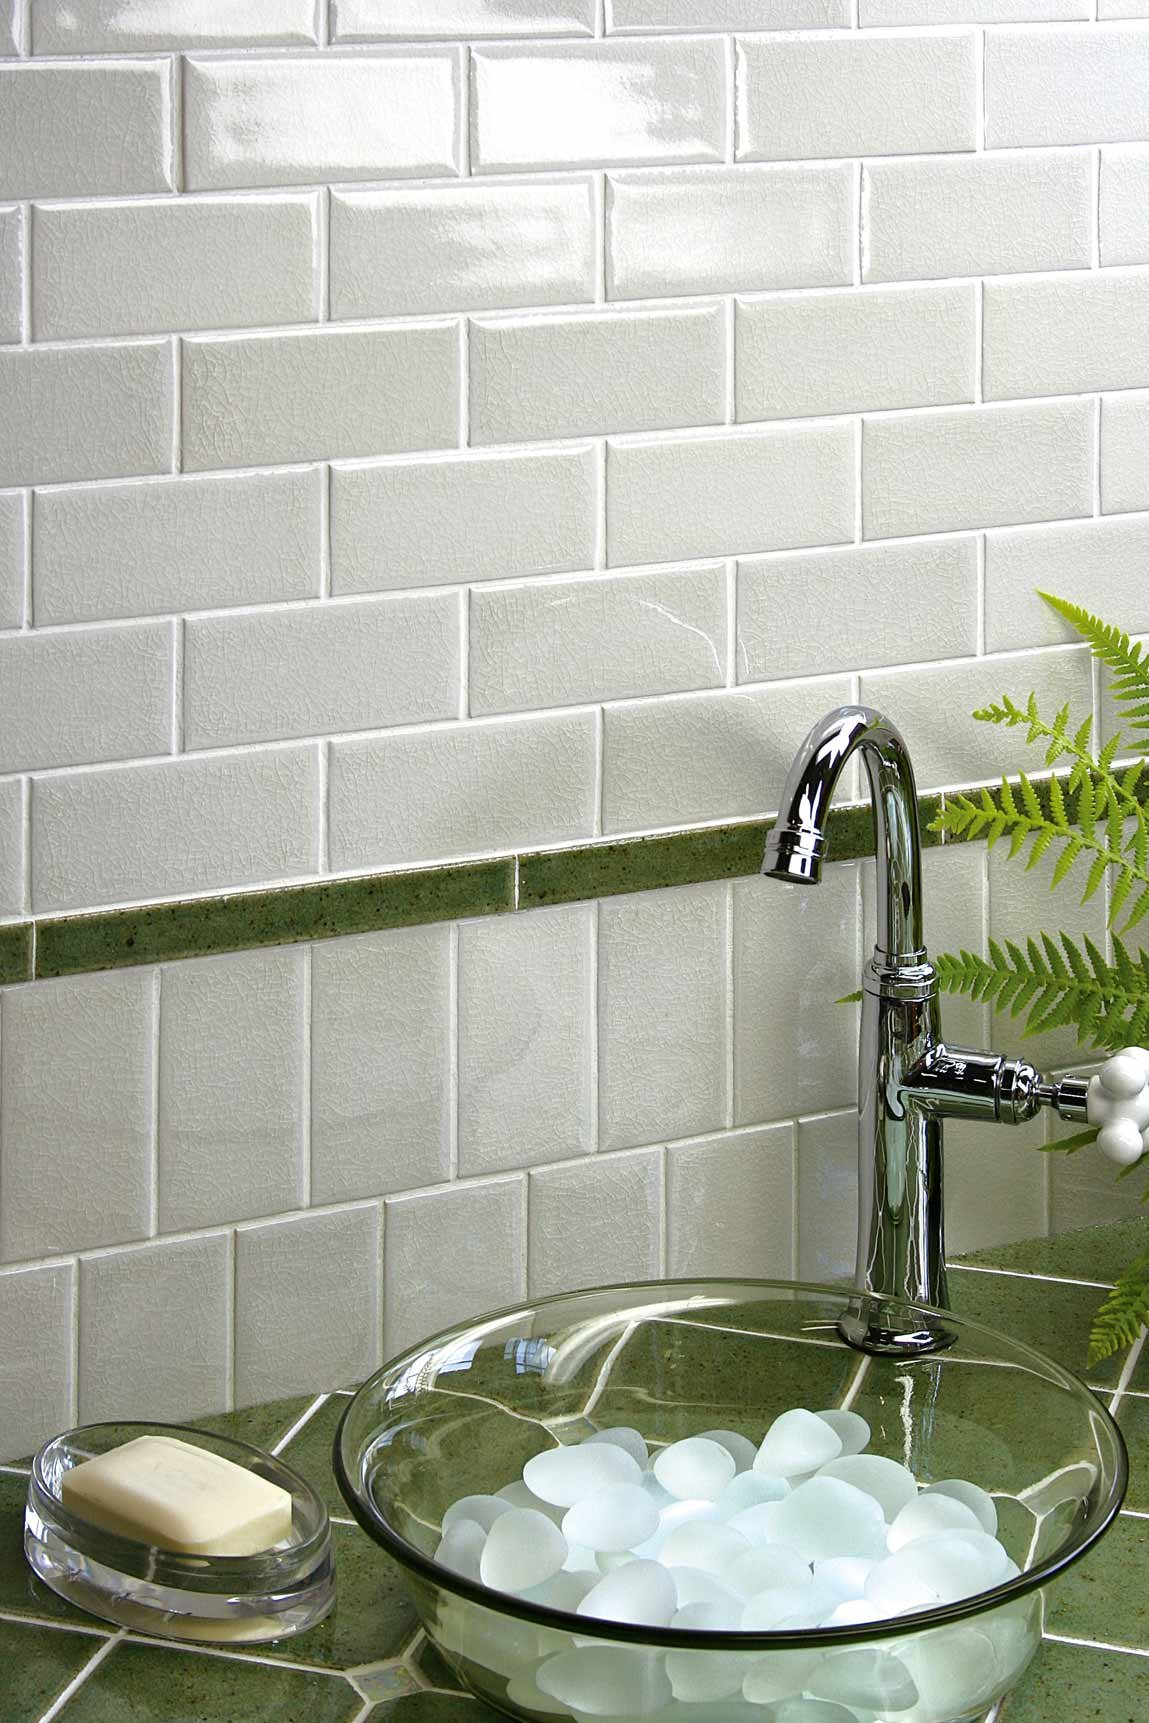 Interior accent wall tile made of ceramic white